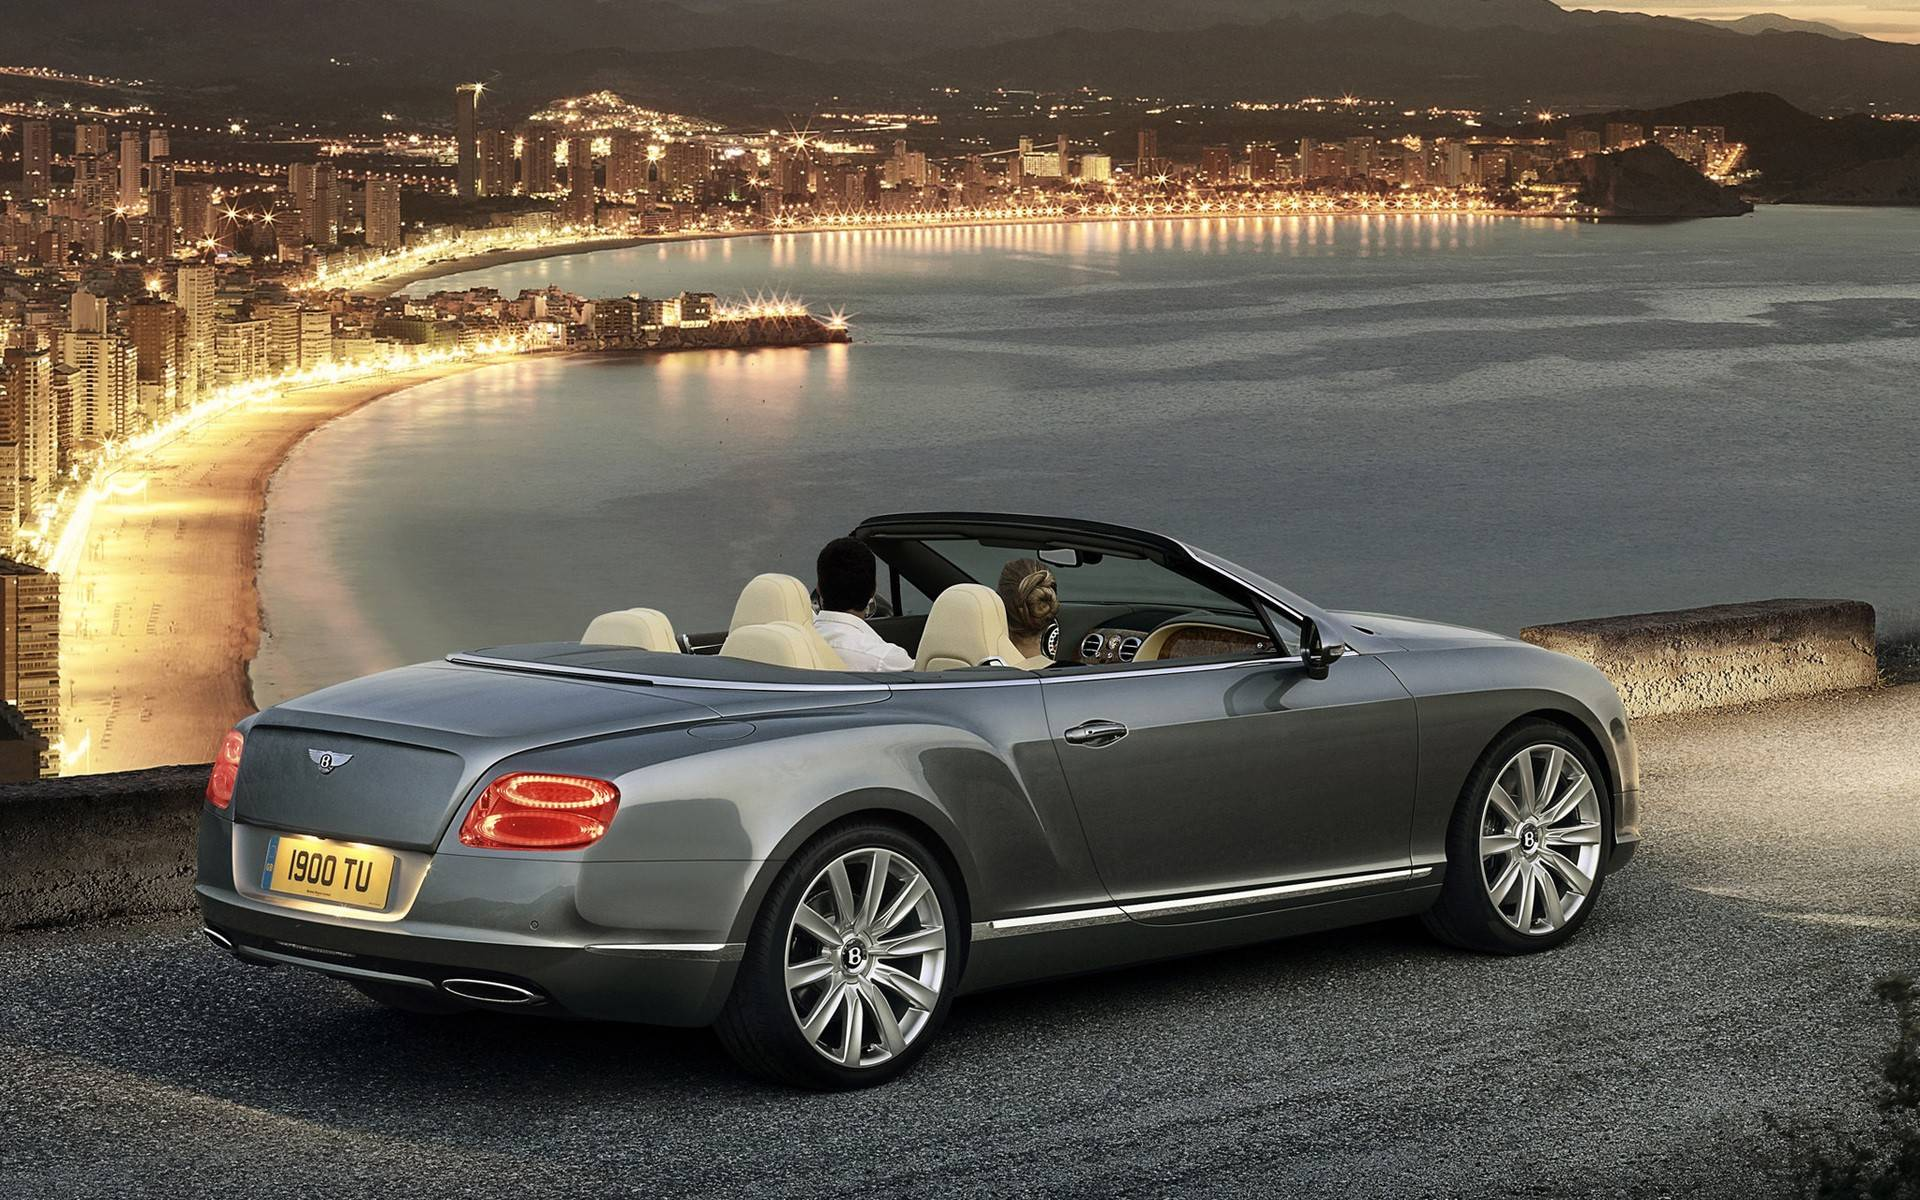 Car Wallpapers 4k Bentely Bentley Cars Pictures 41 High Resolution Car Wallpaper